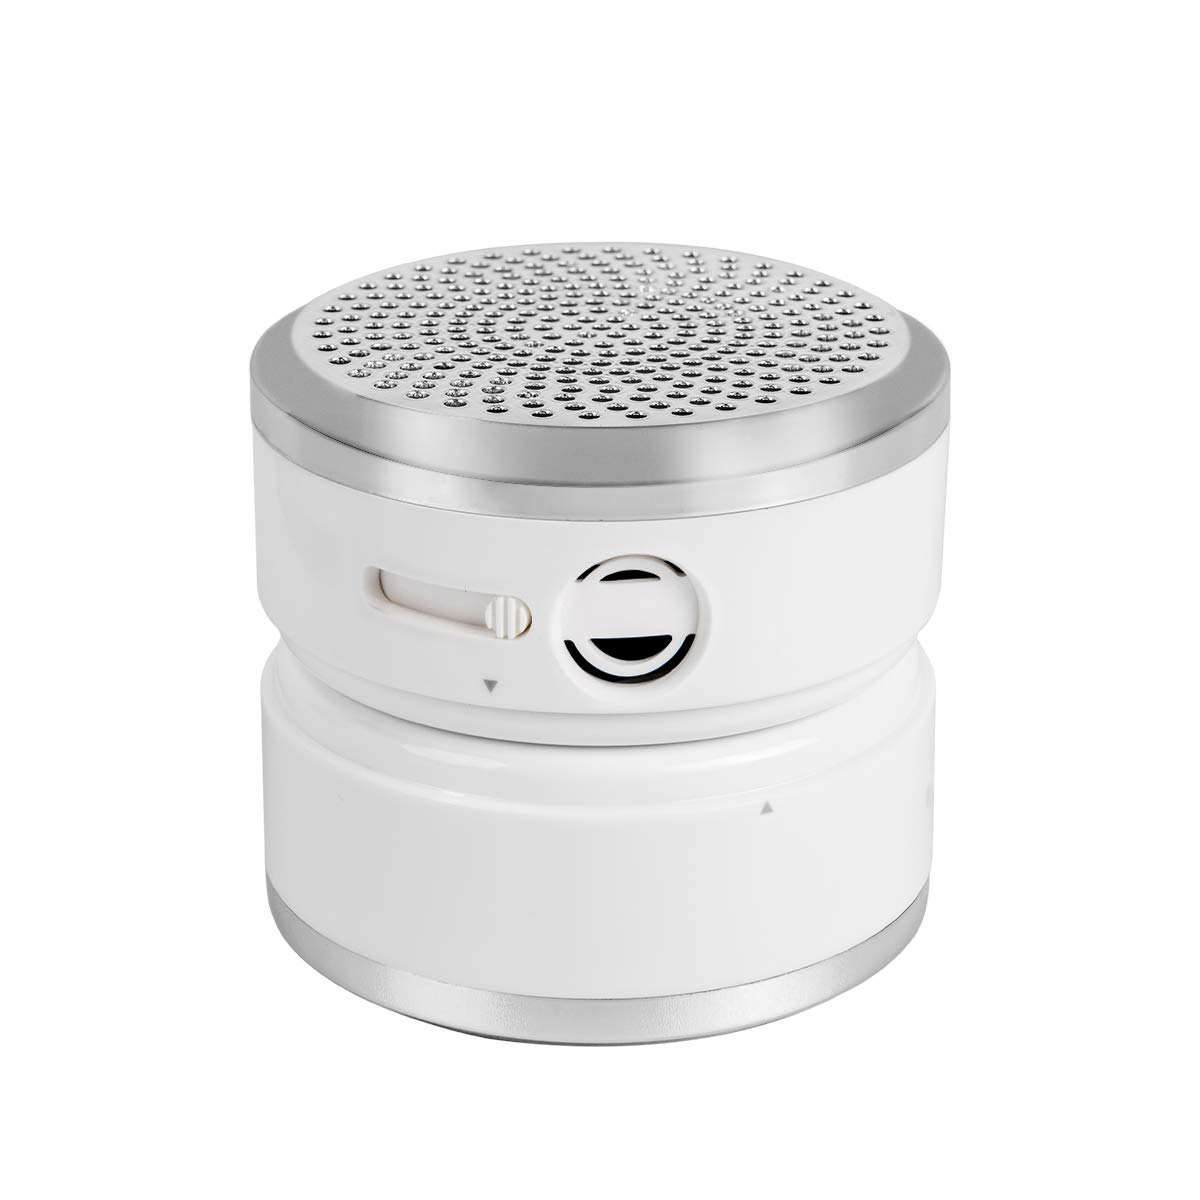 FitAir Portable Air Purifier With True HEPA Filter For Allergen, Dust, Pet, Odor, Smoke, Mold, USB Mini Air Purifier For Small Room, Travel, Desktop, Car, Camping And Kids, White